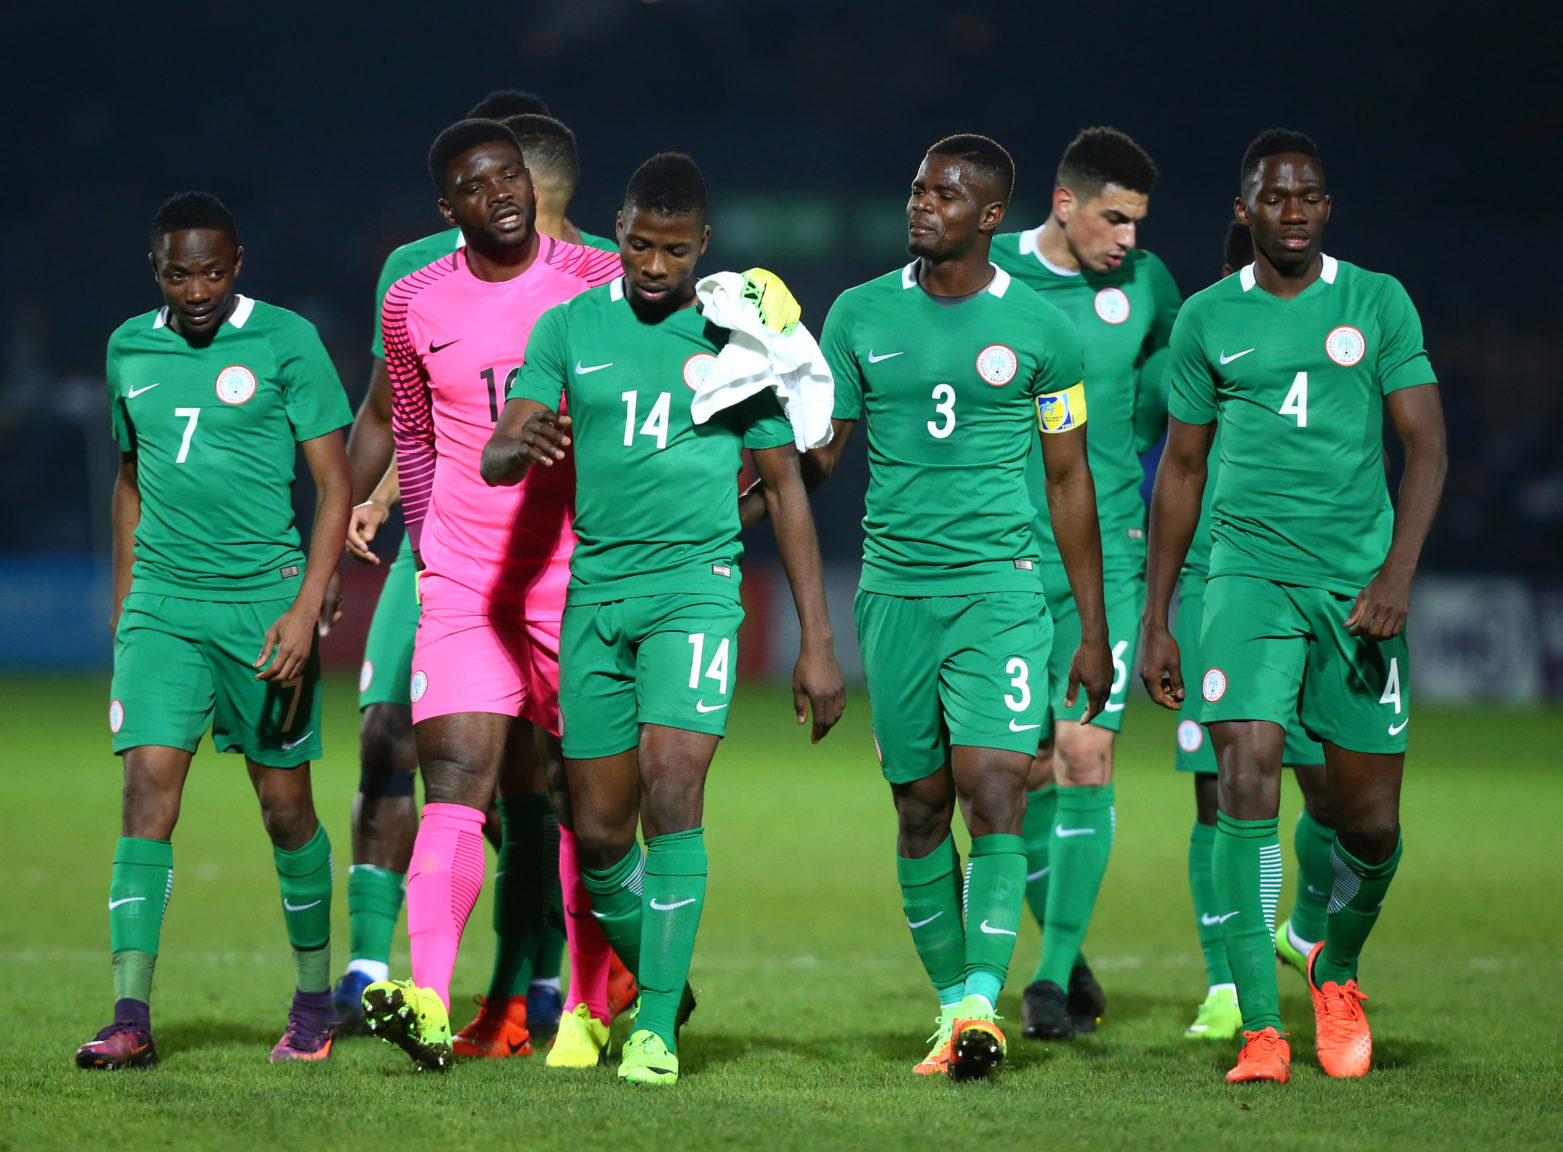 Super eagles will recover versus Cameroon: Rohr